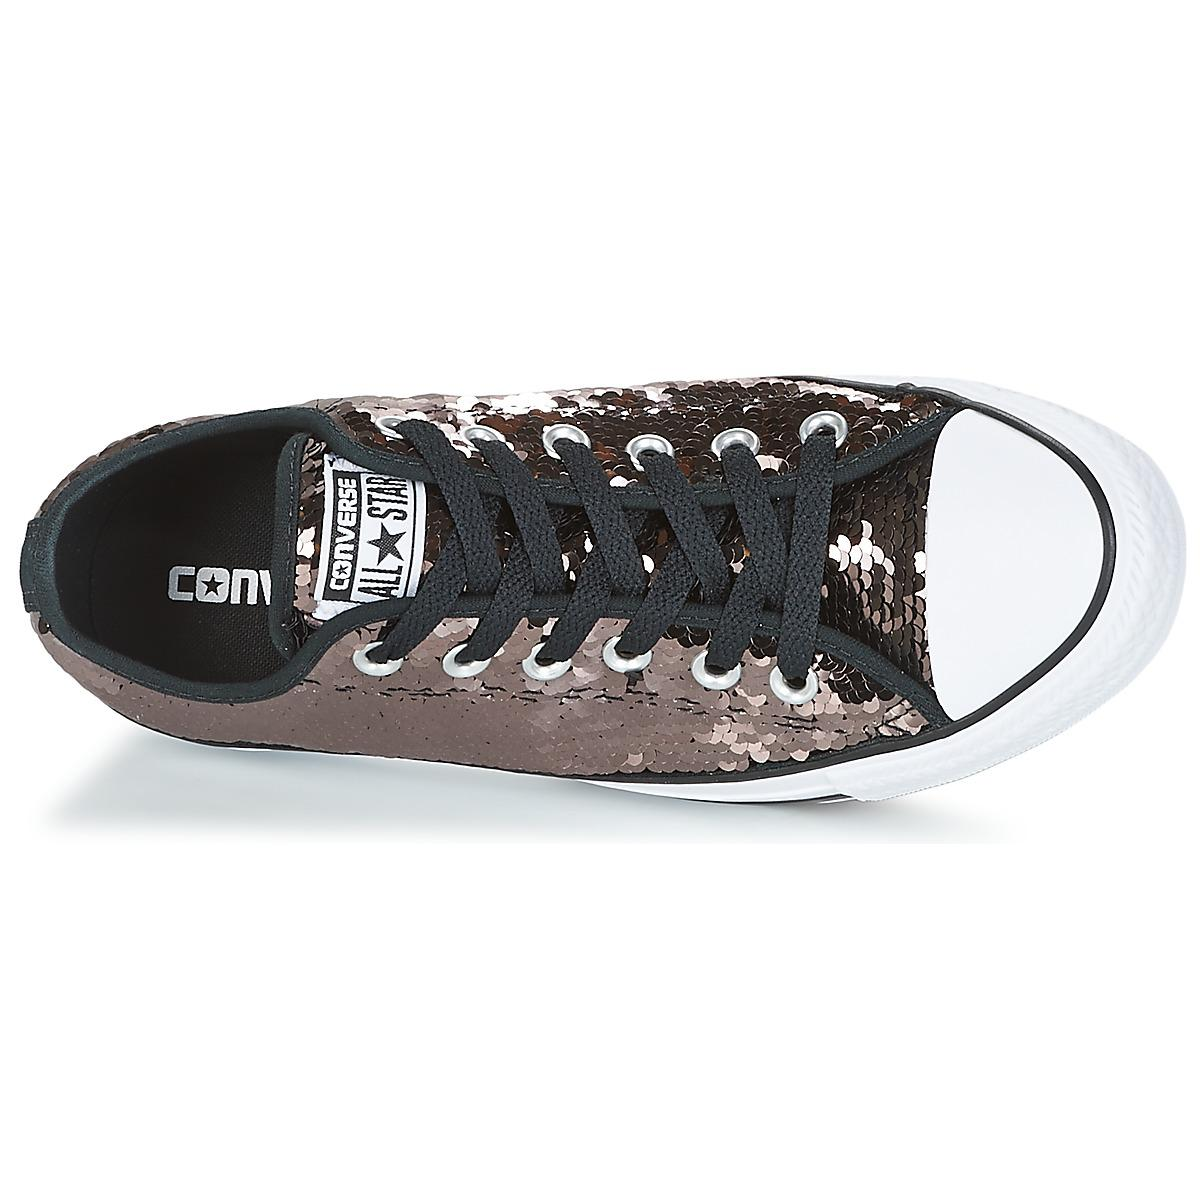 Converse Chuck Taylor All Star Sequins Ox Gunmetal/white/black Women's Shoes (trainers) In Brown